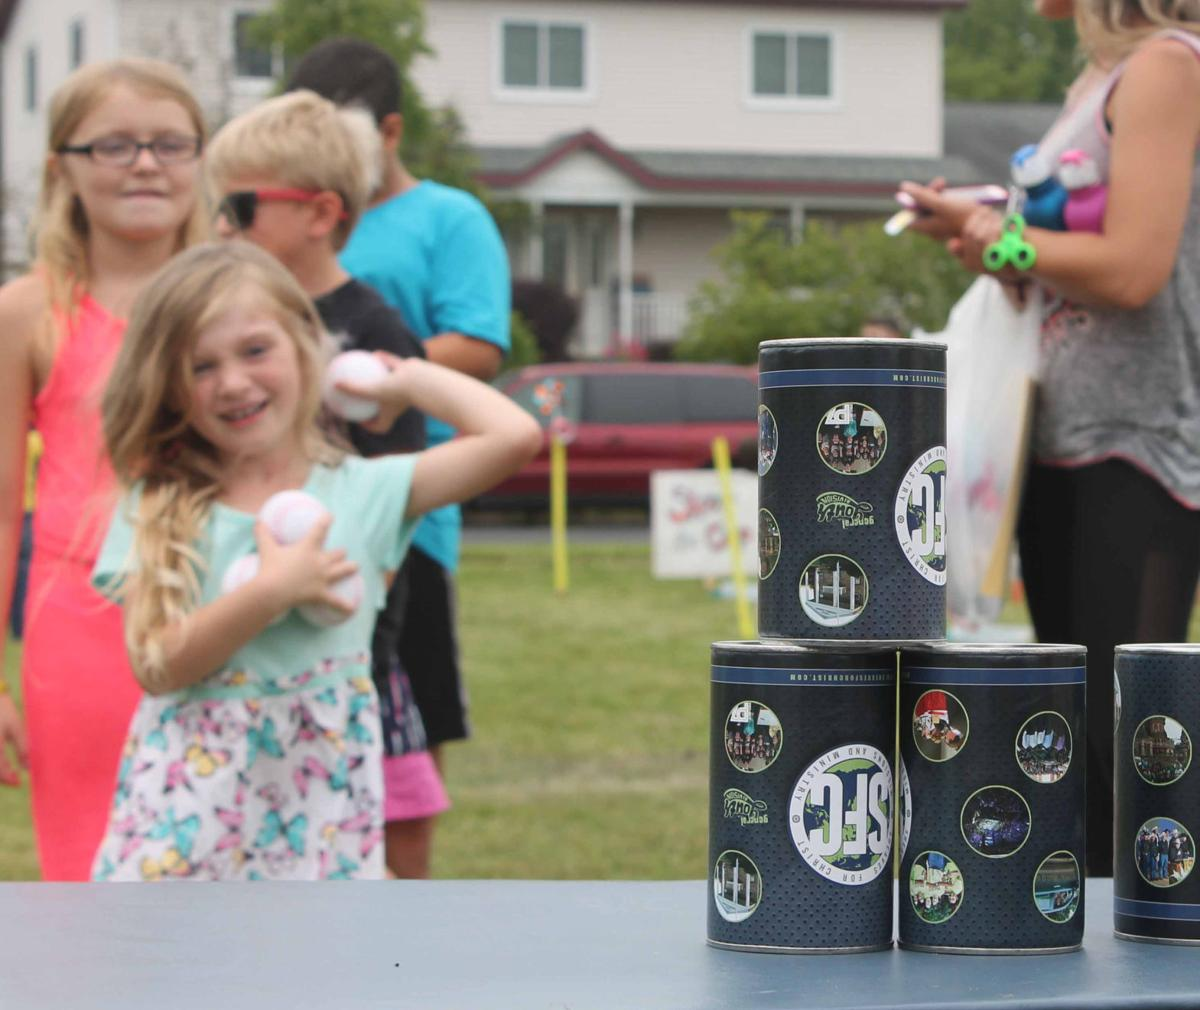 big turnout expected at back to school party in reedsburg regional